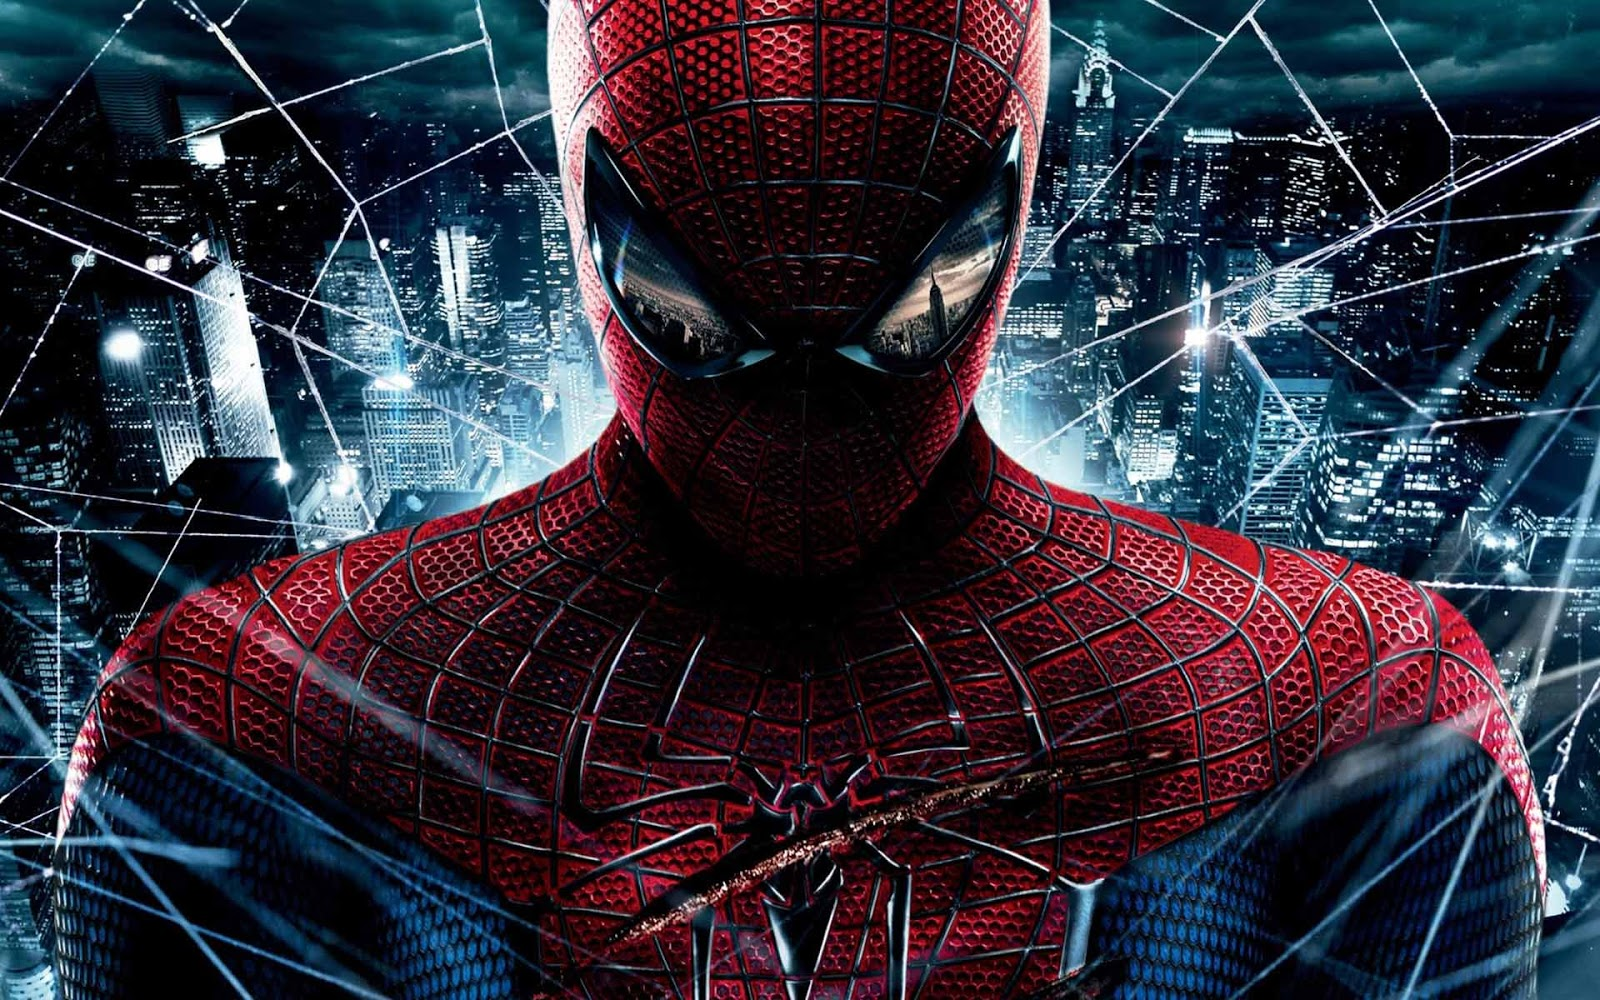 Download HD Spiderman Pictures